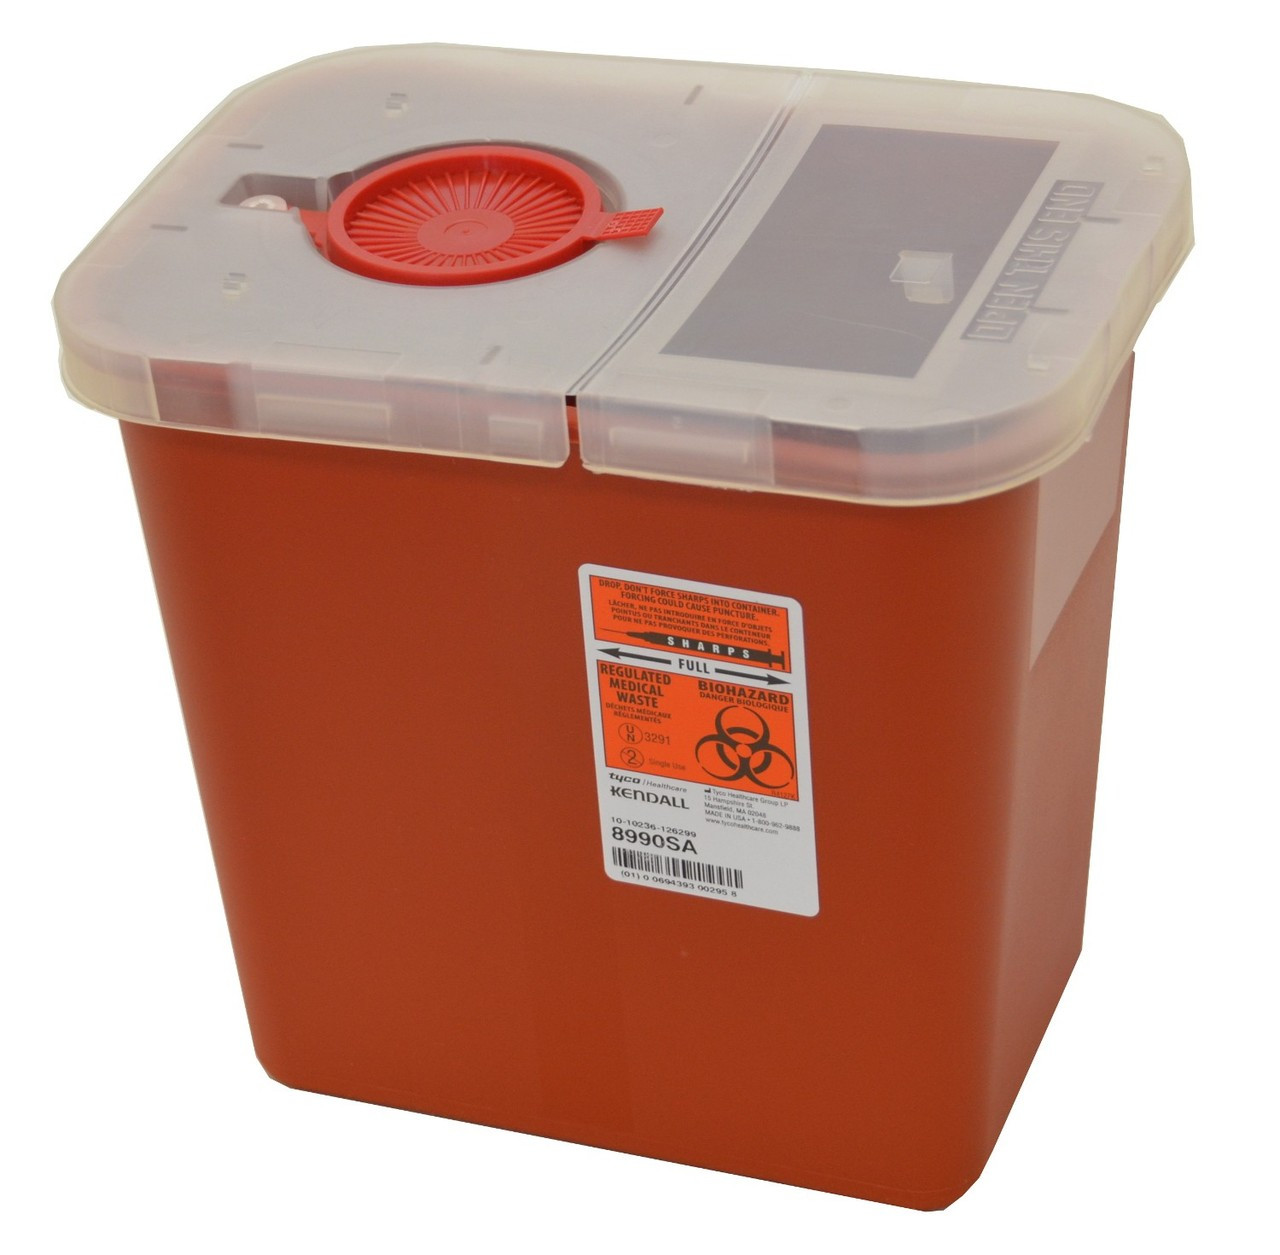 2 Gal. Sharps Container #8990  by Kendall